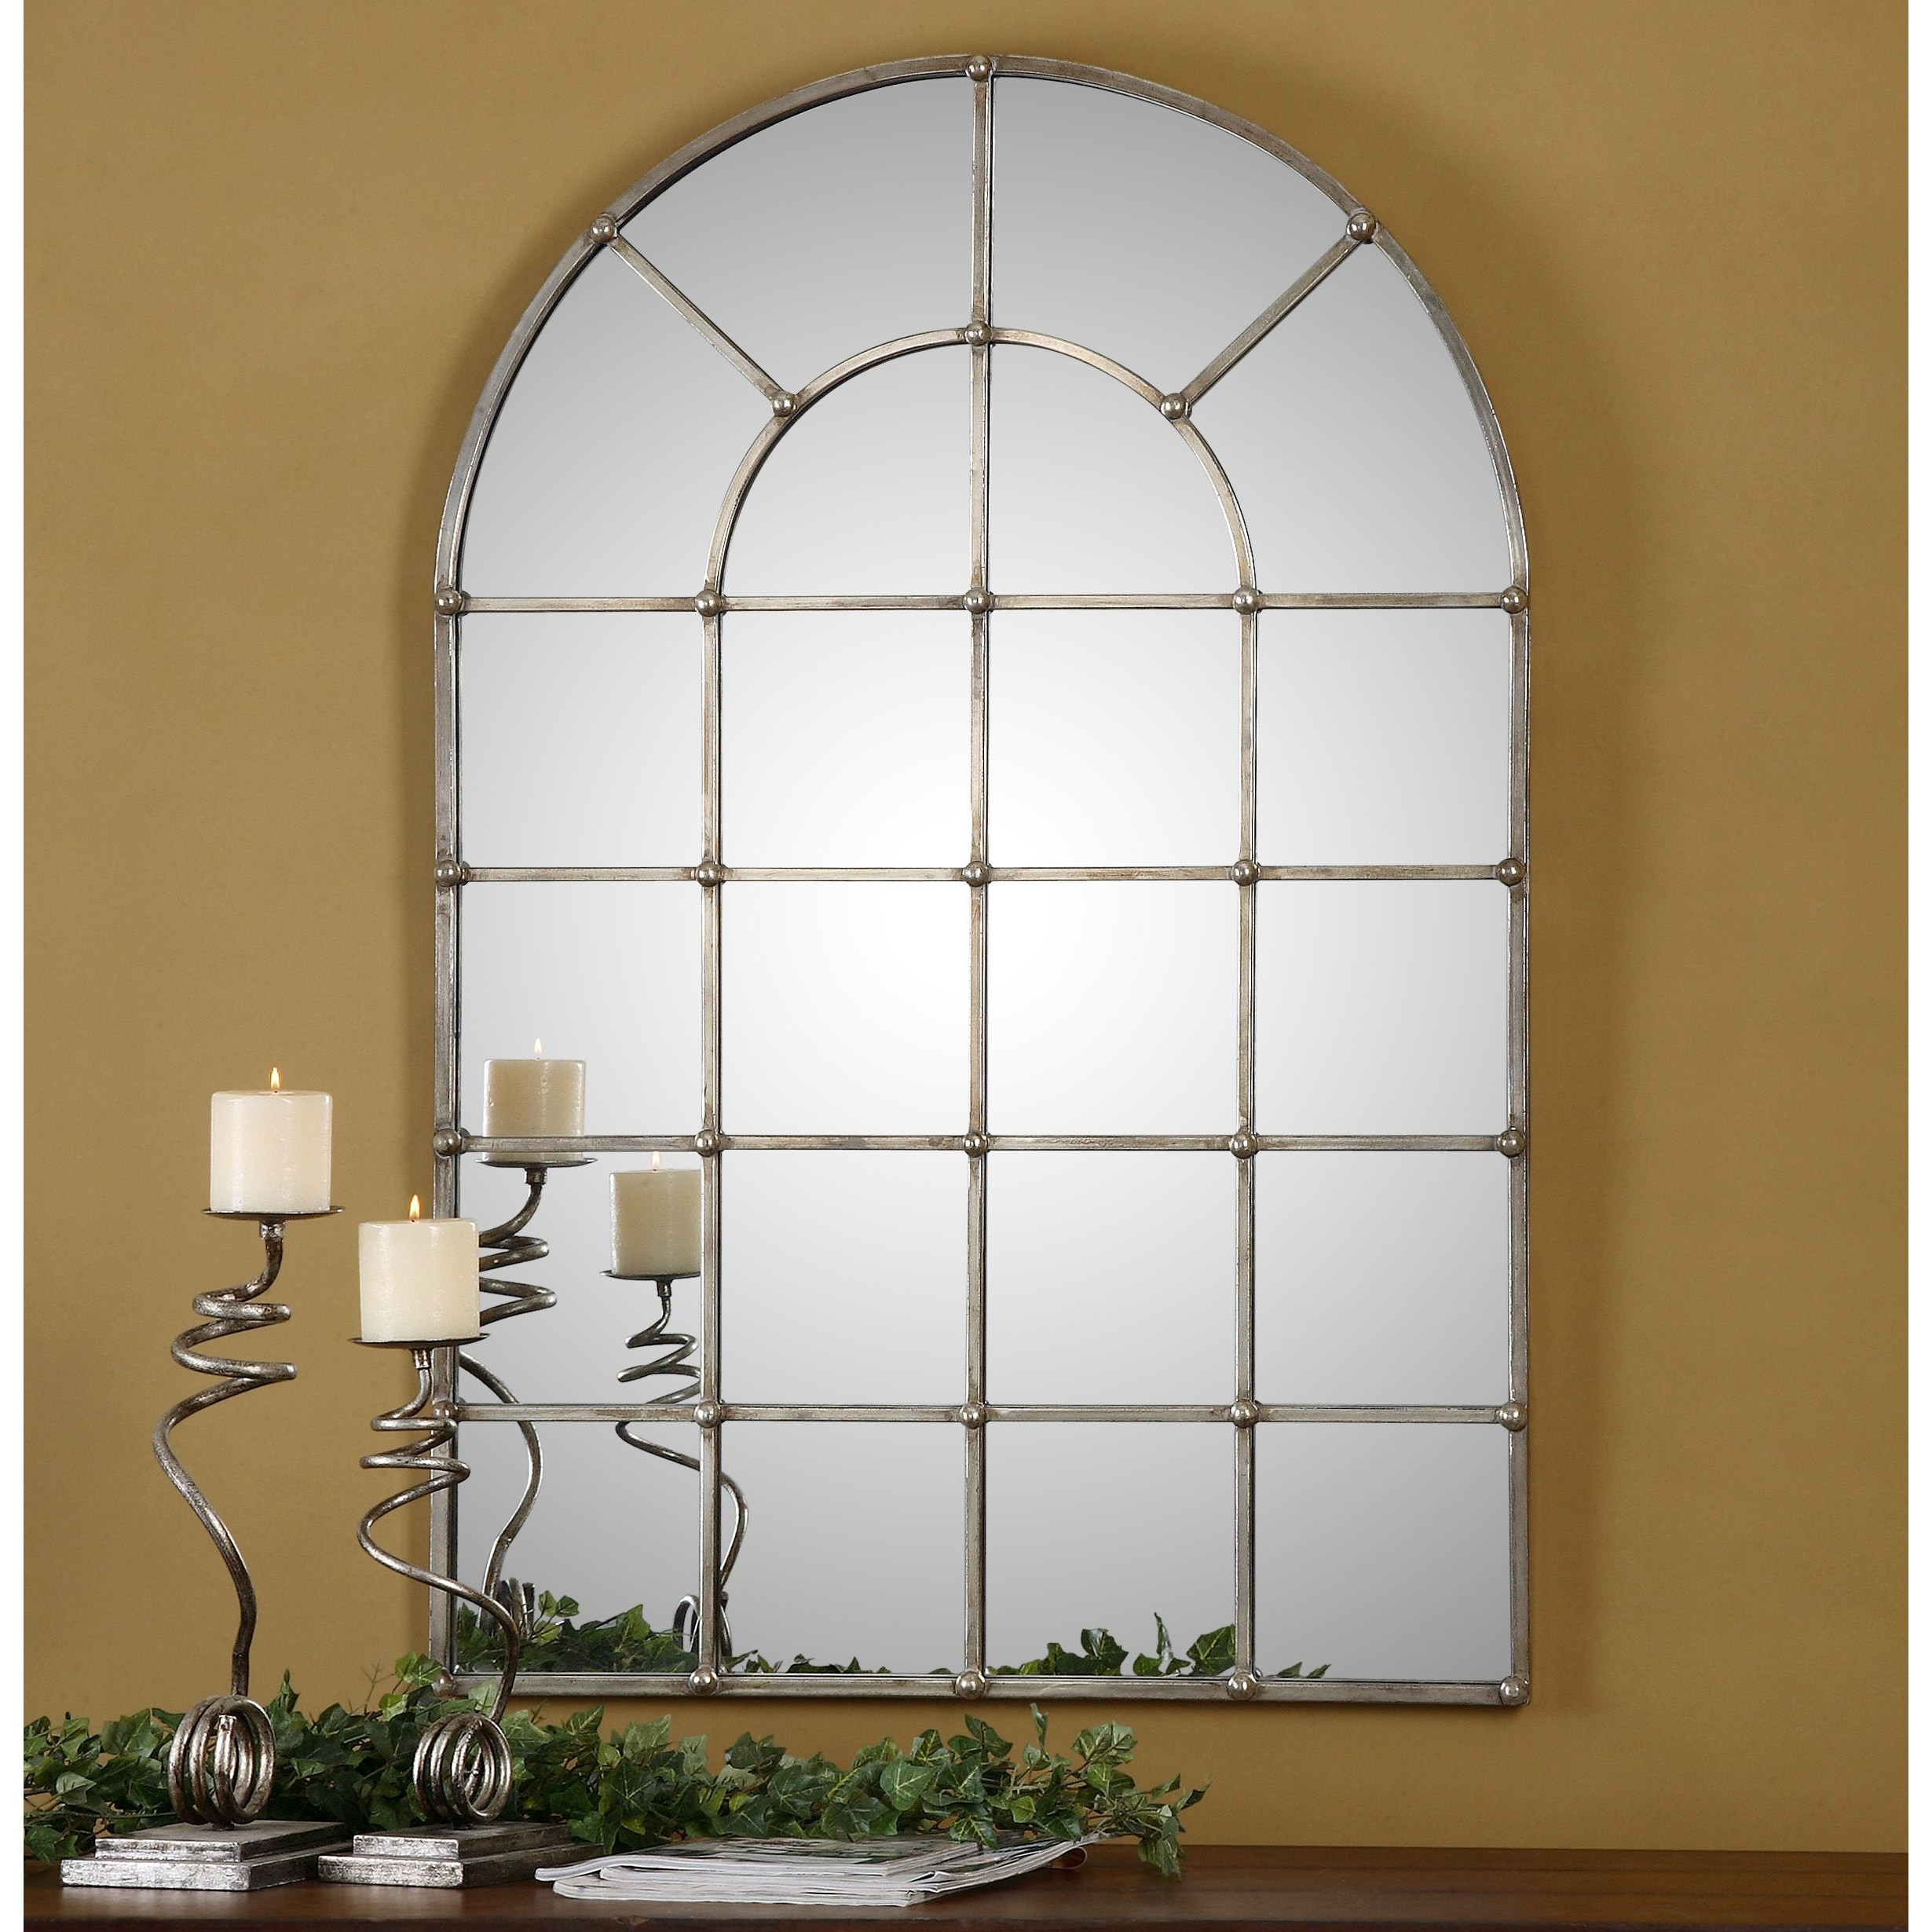 Uttermost Barwell Arch Window Mirror Reviews Wayfair Stacy With Large Arched Mirrors (Photo 8 of 15)